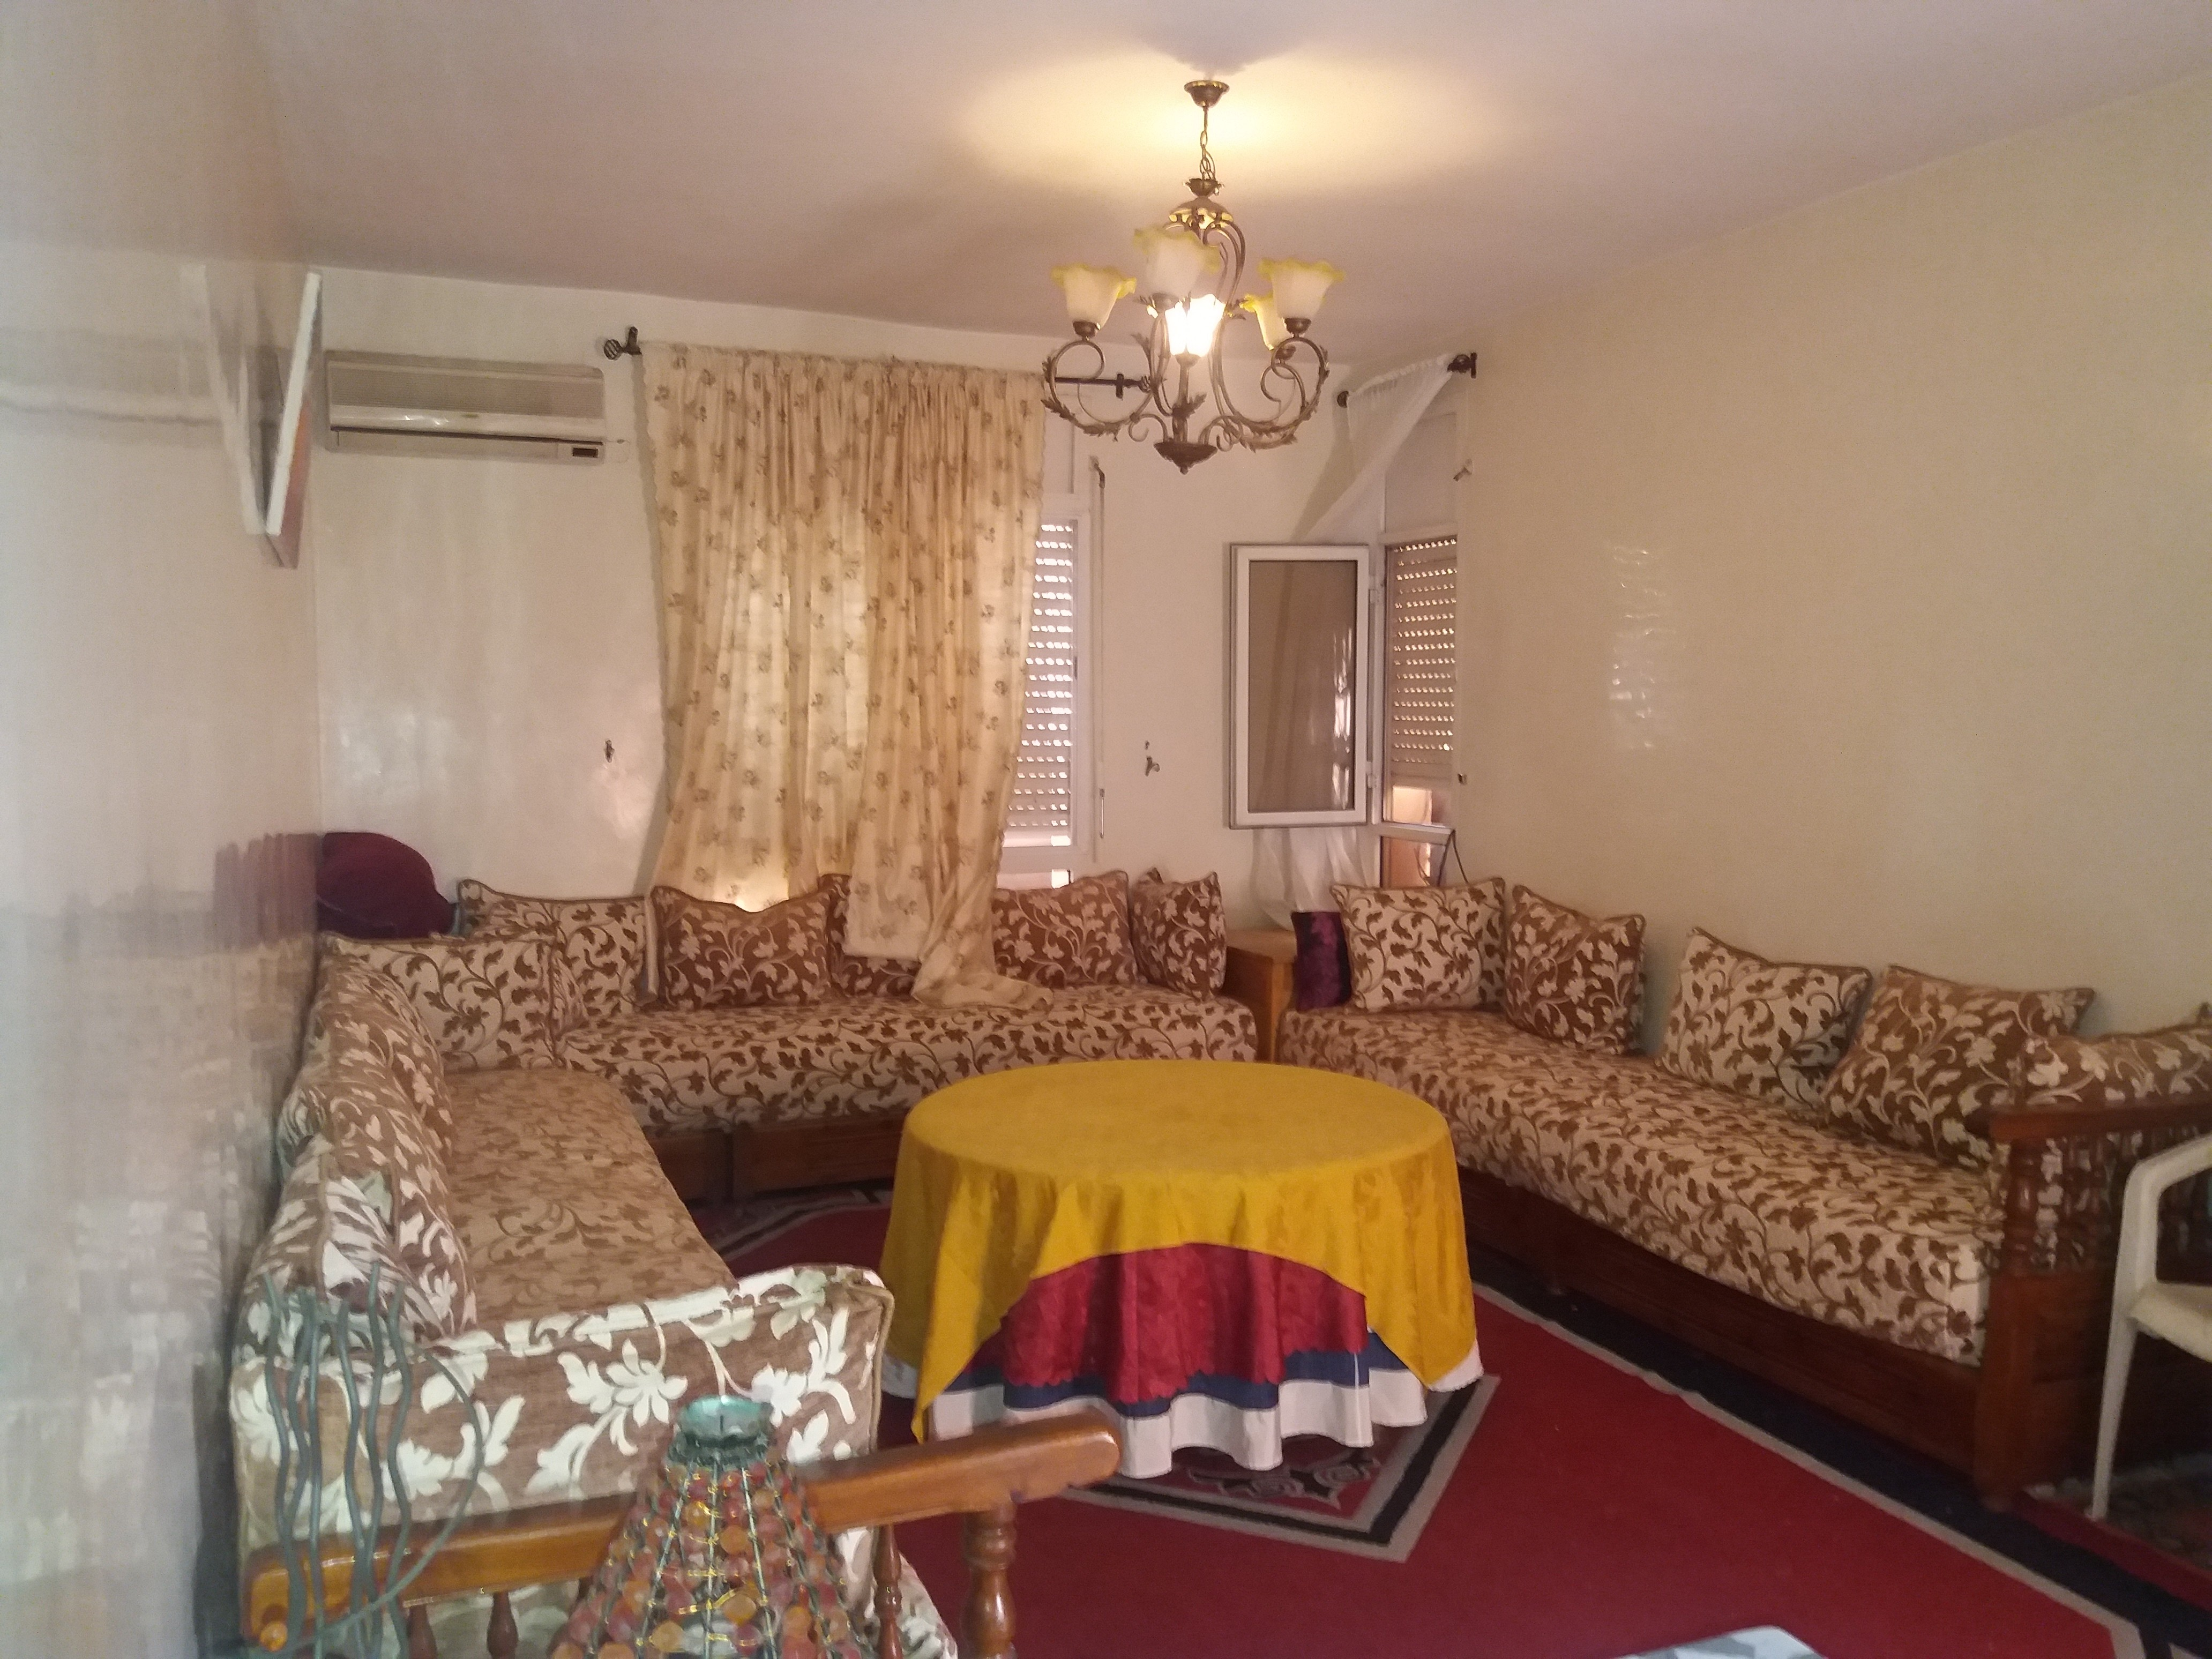 Location <strong>Appartement</strong> Marrakech Allal El Fassi <strong>78 m2</strong>